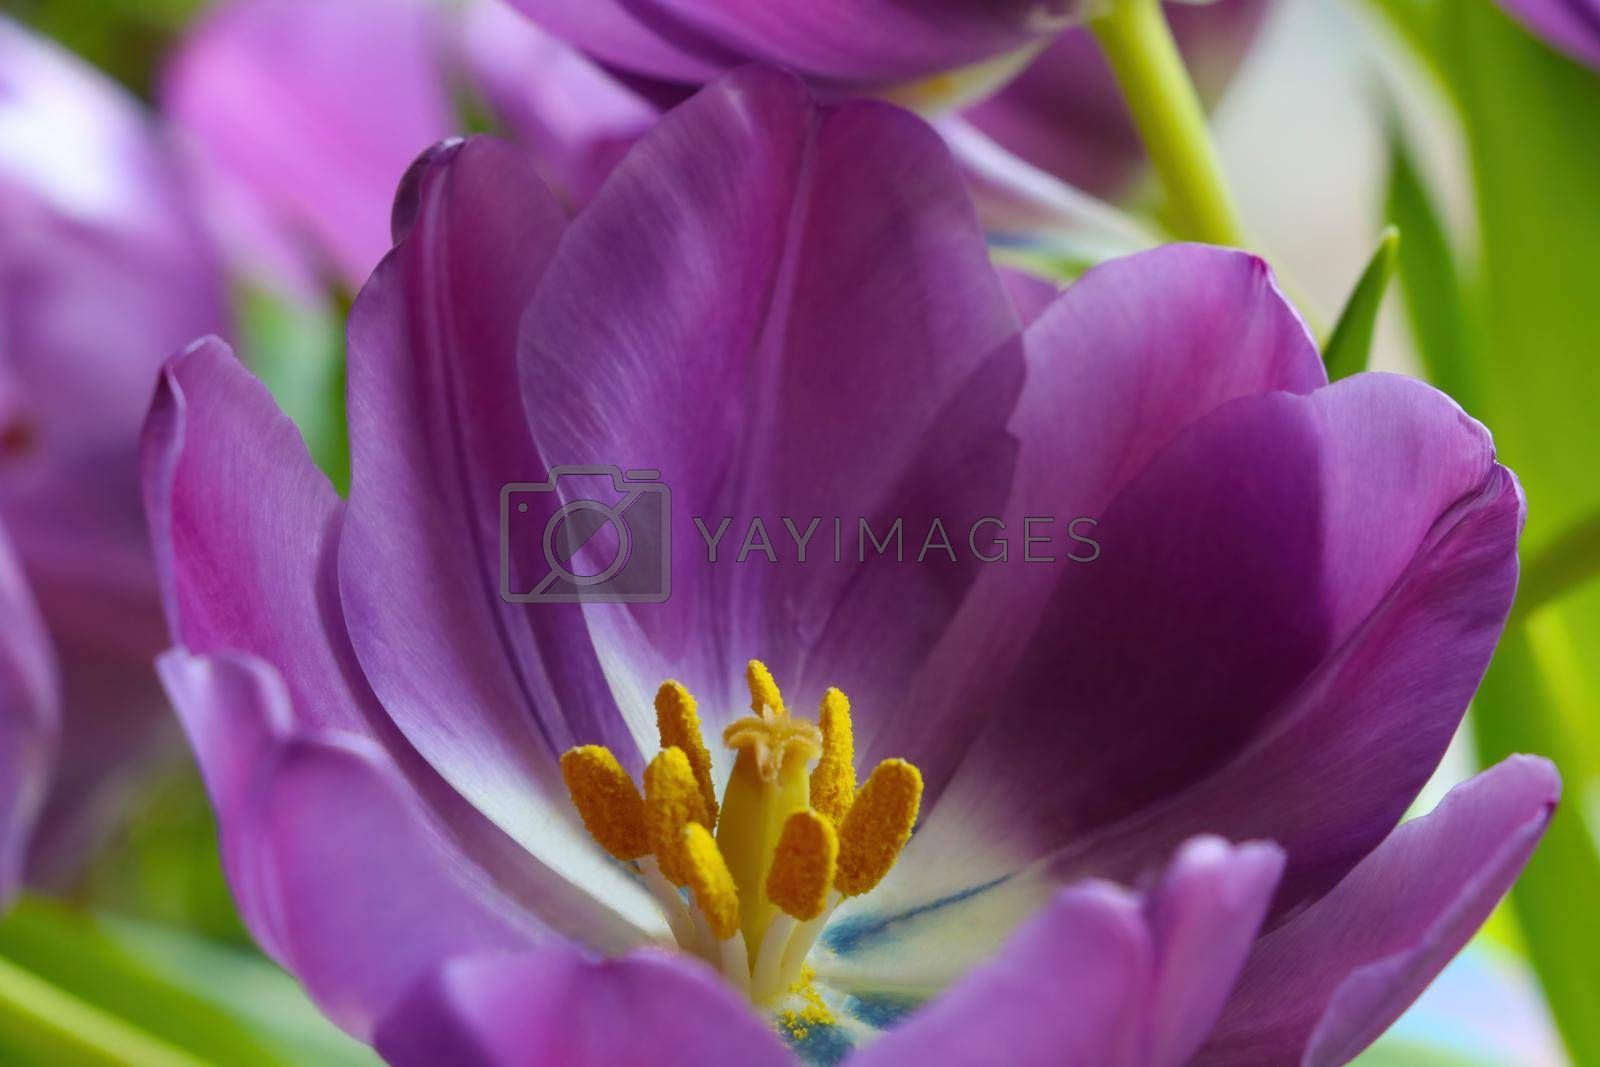 Royalty free image of View of a young purple blooming tulip in the park. by kip02kas